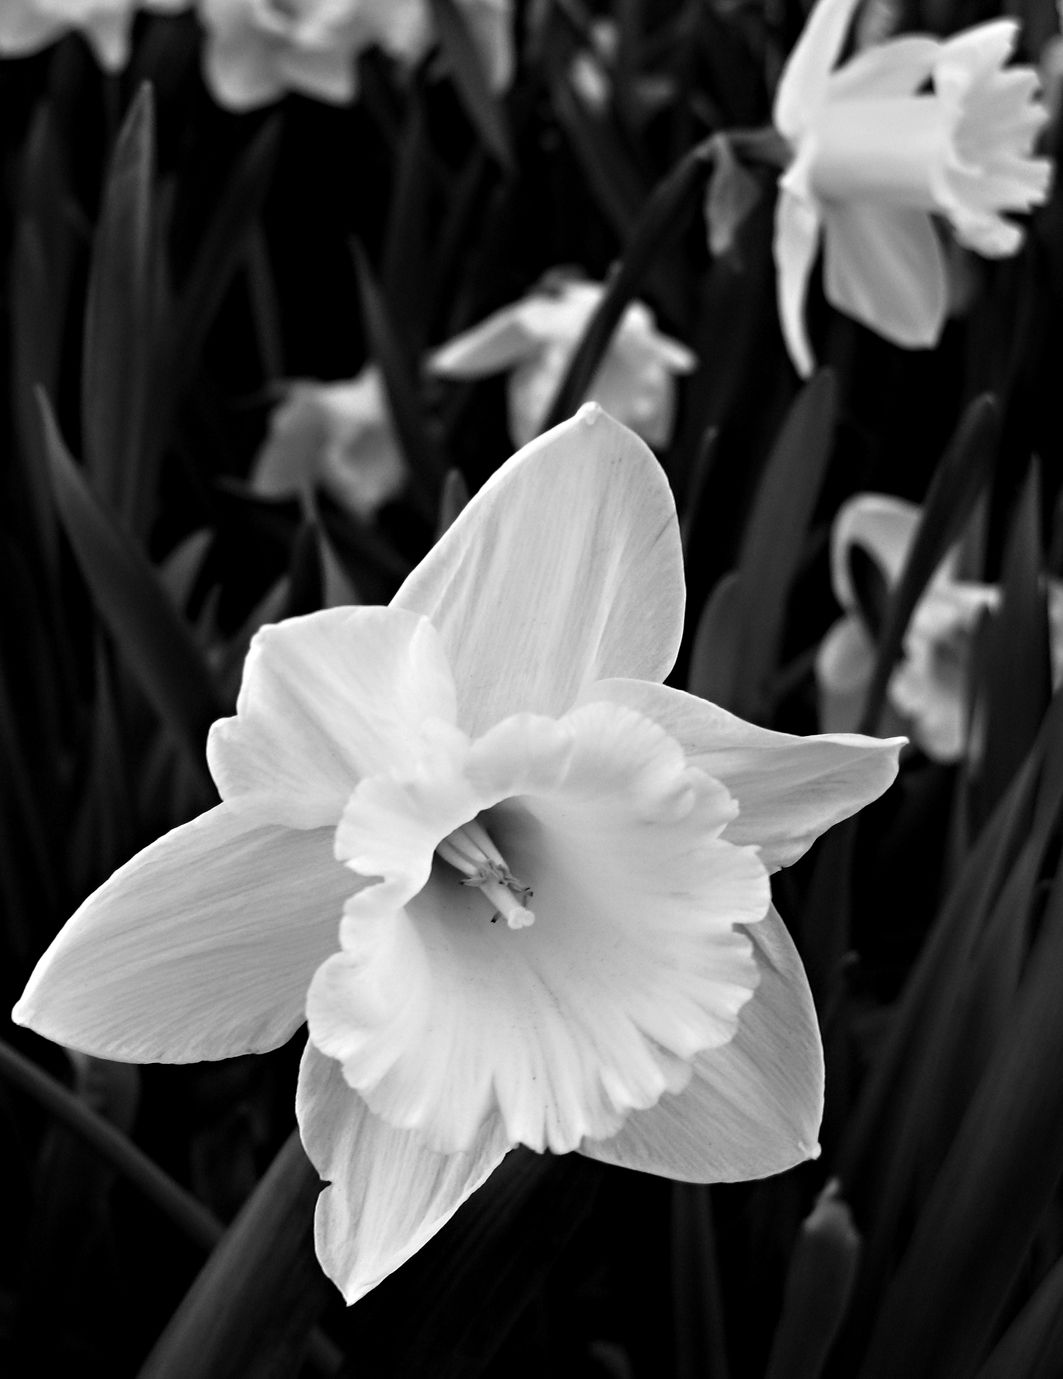 Narcissus december birth flower Birth flowers